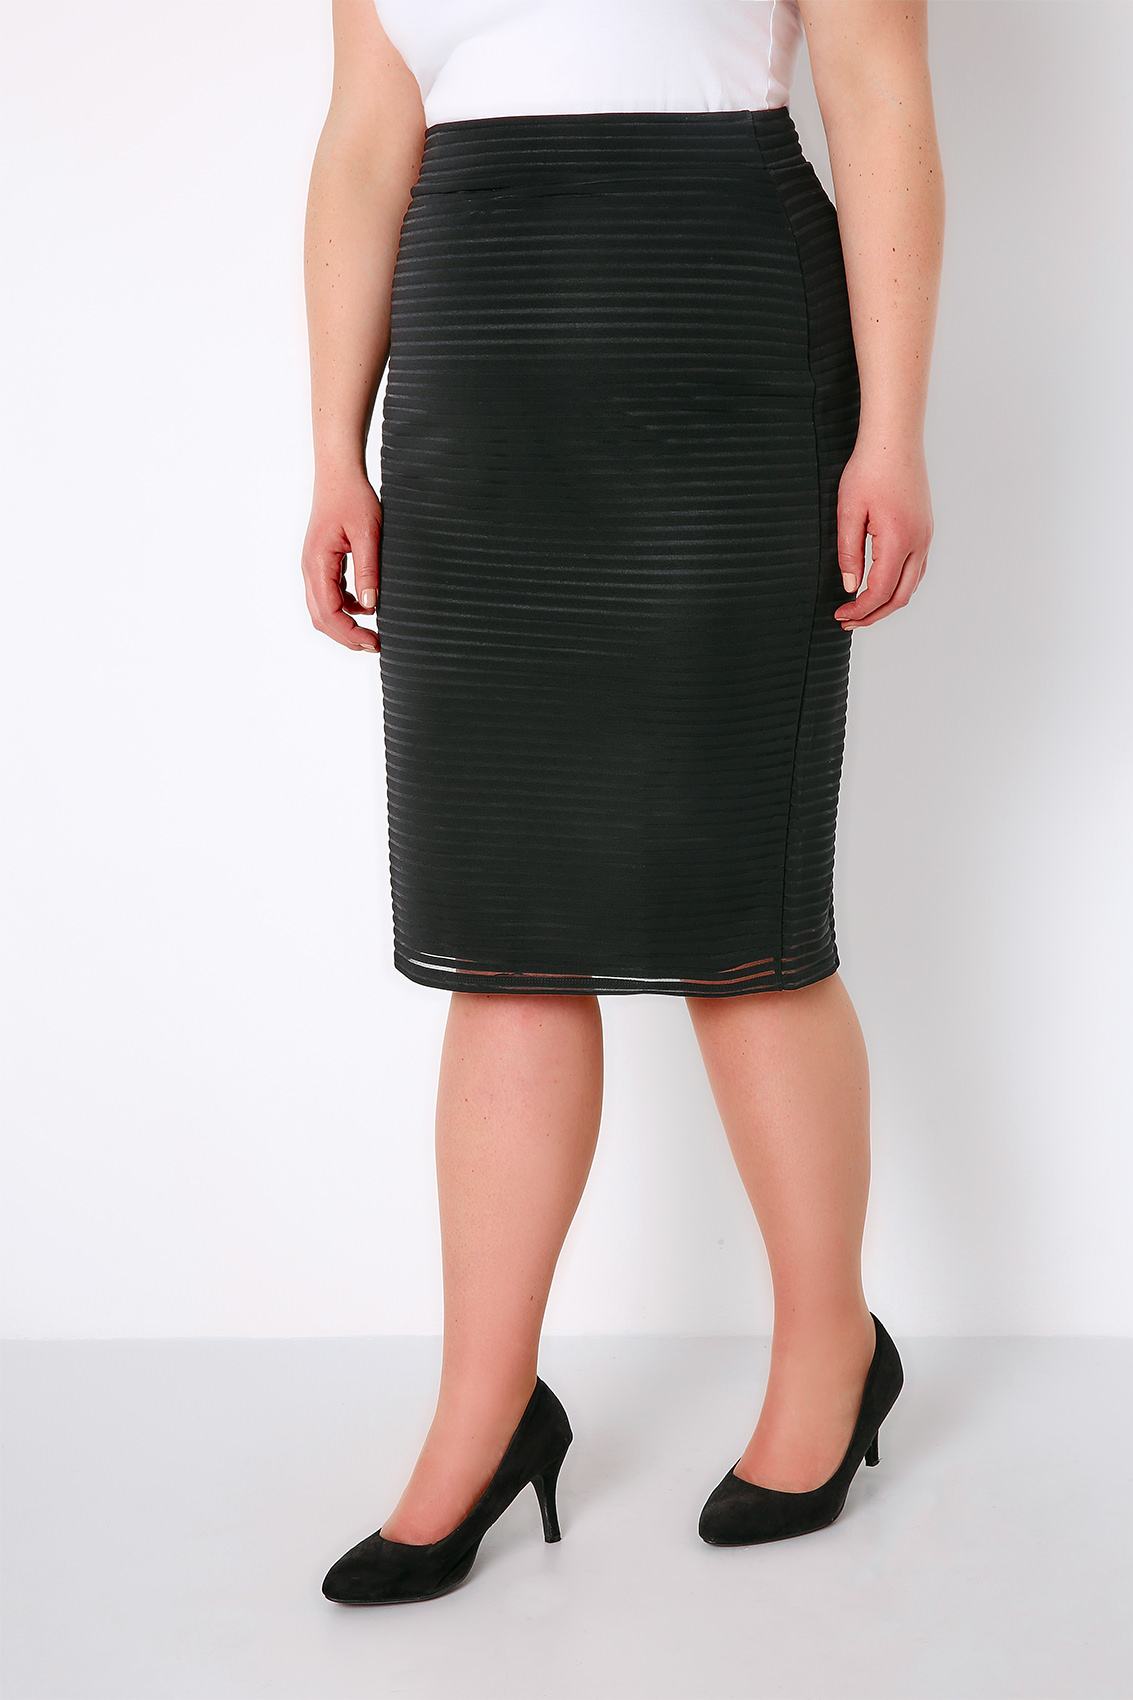 black pencil skirt with striped mesh overlay fully lined